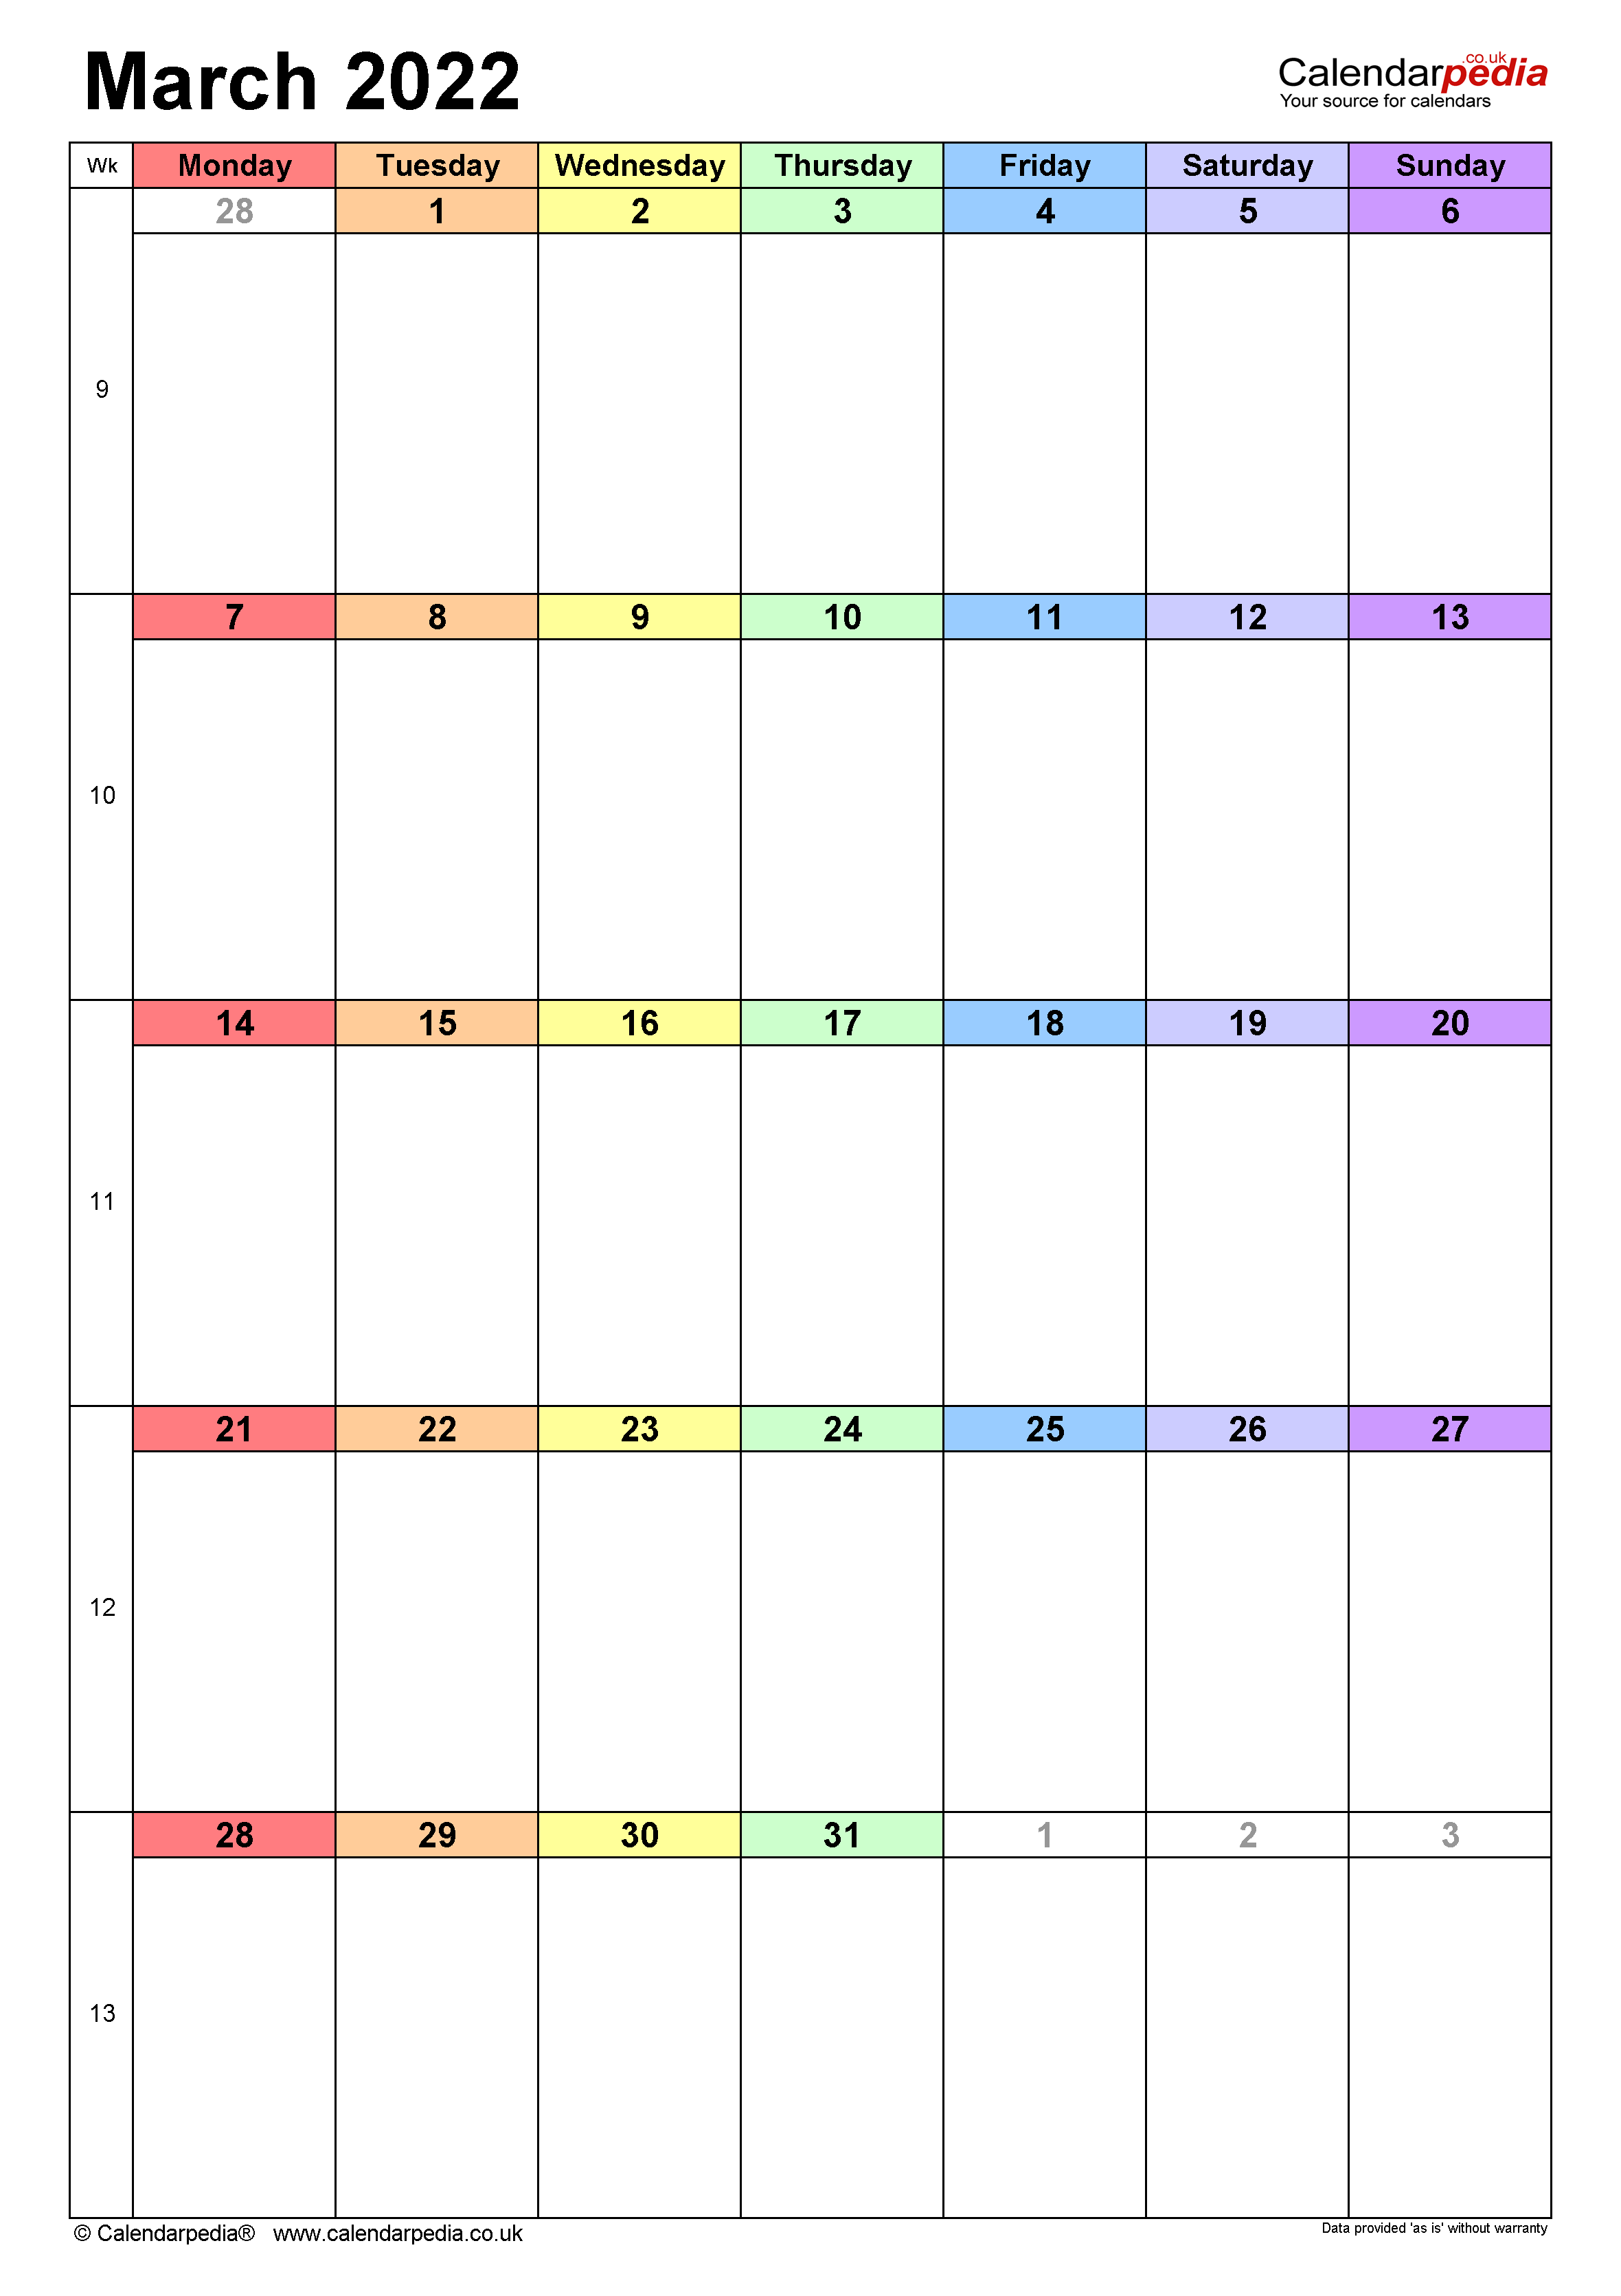 Calendar March 2022 Uk With Excel, Word And Pdf Templates Pertaining To February March And April 2022 Calendar